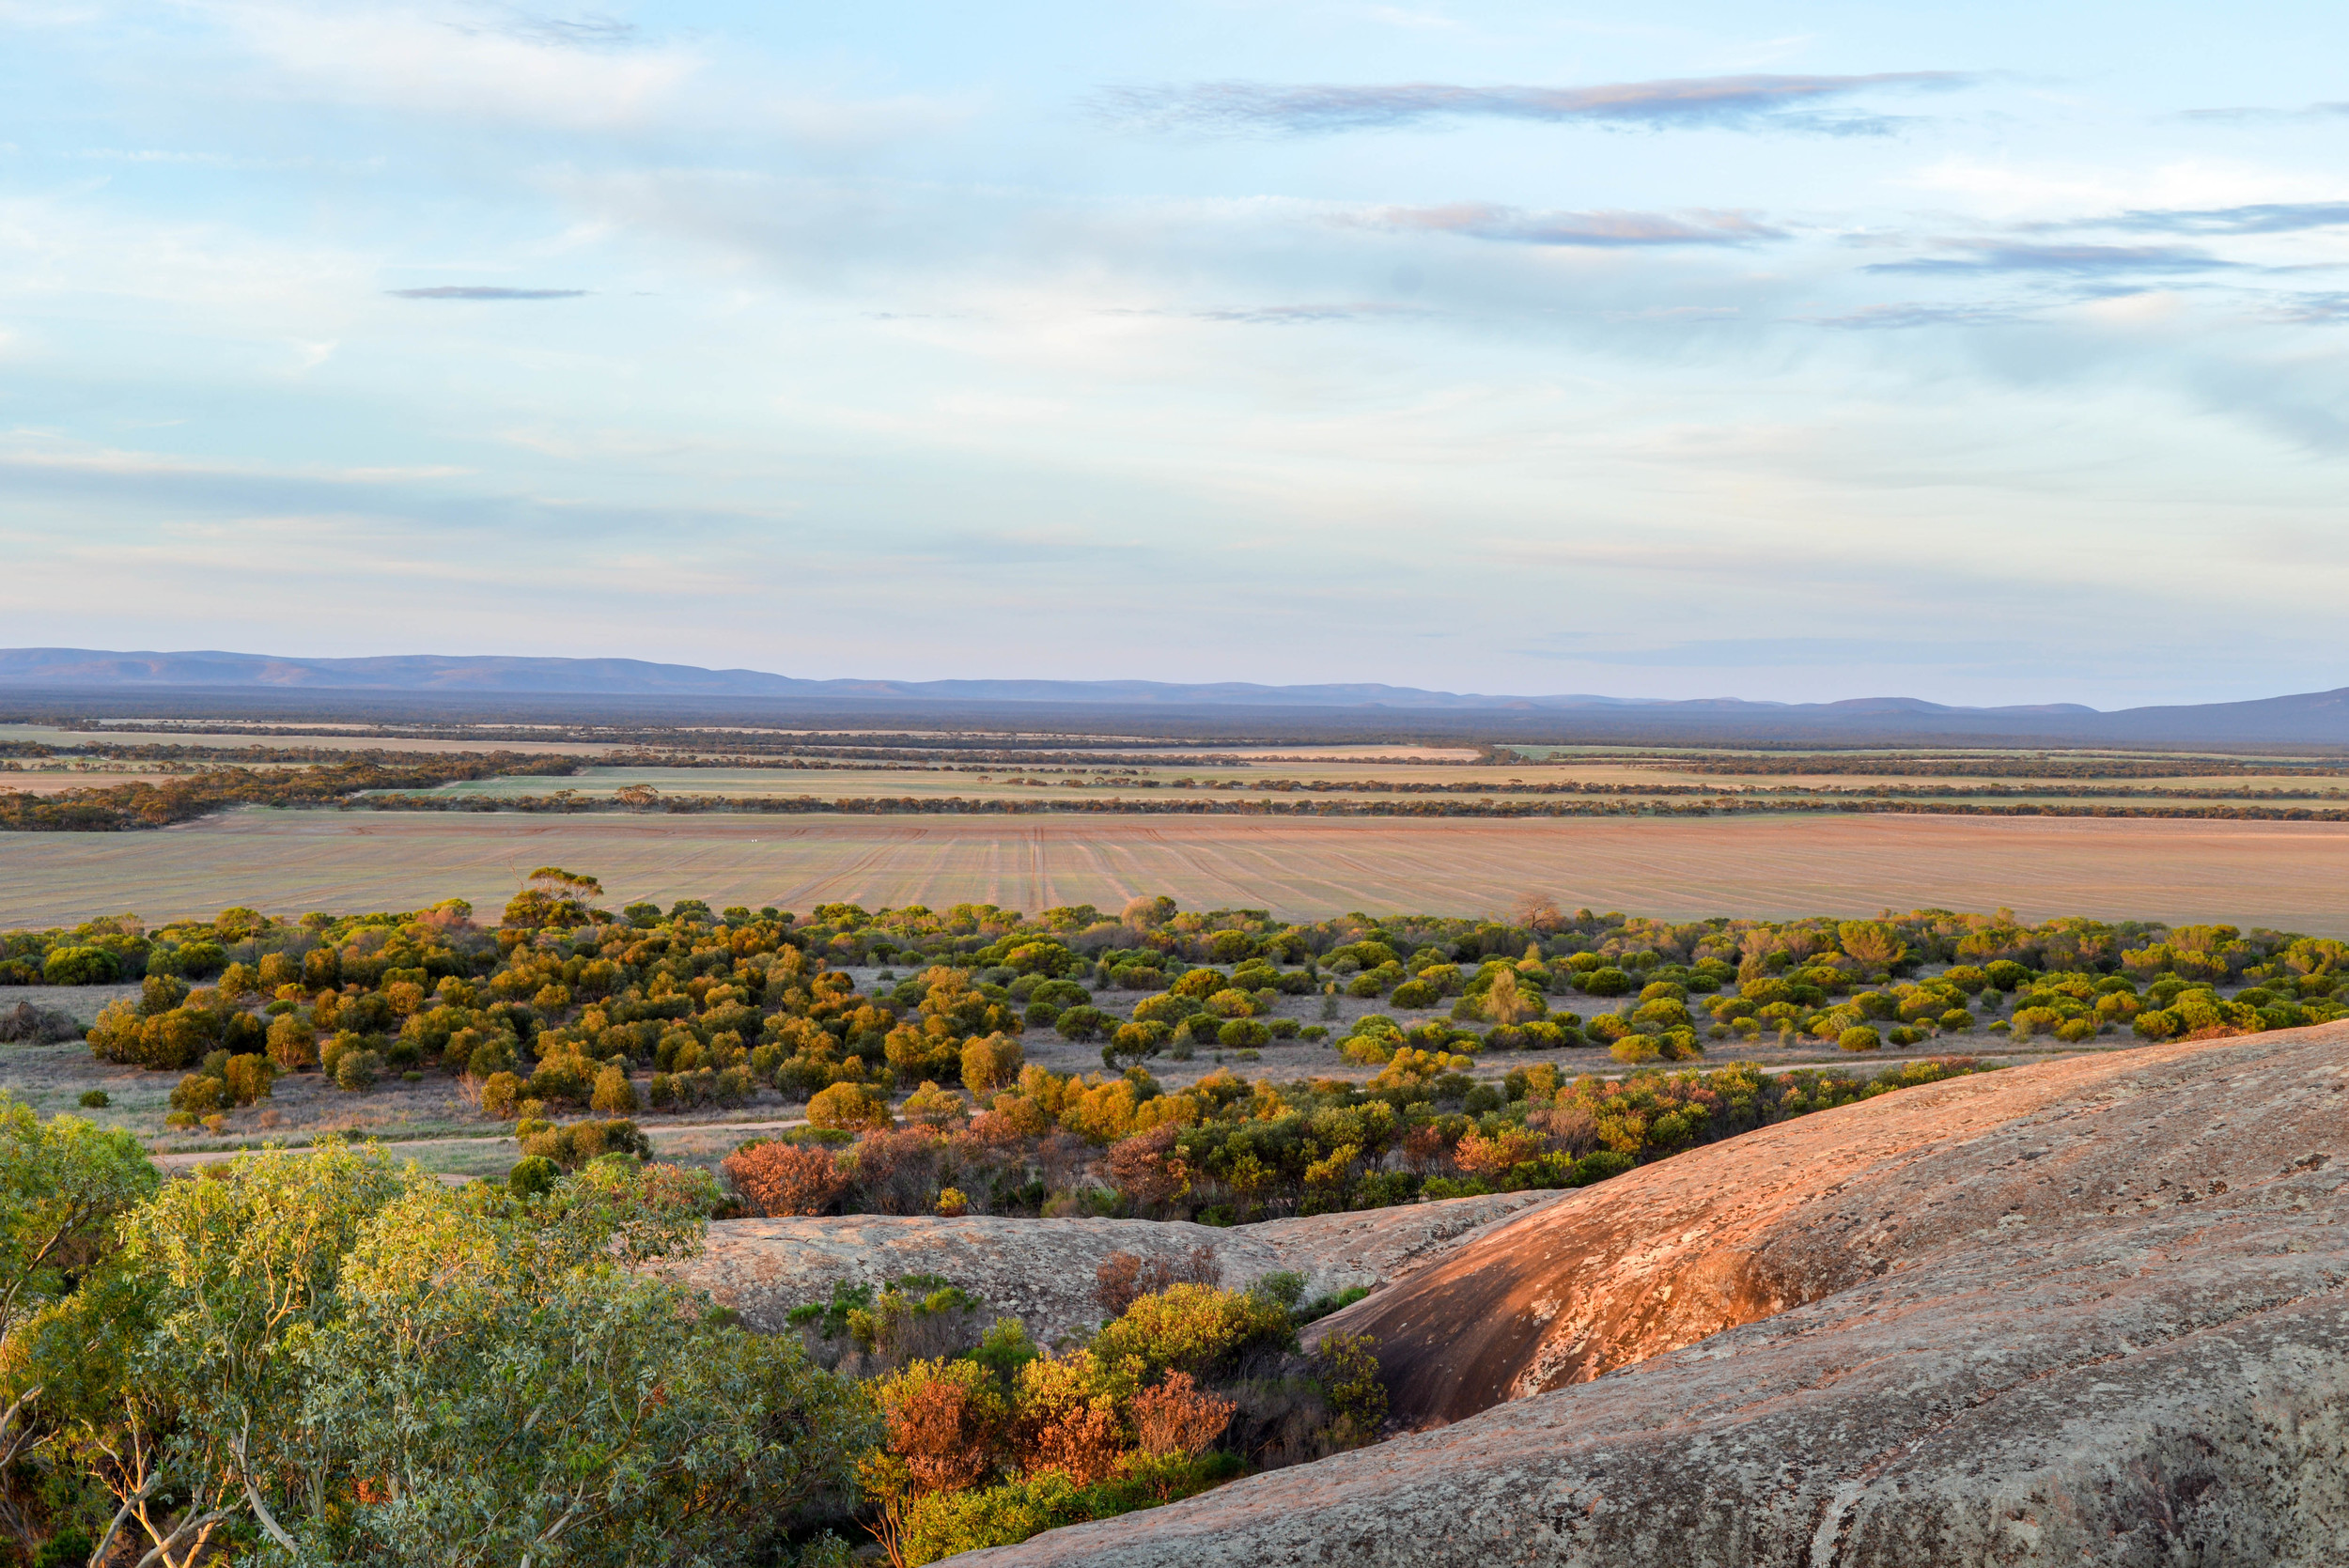 The view of Gawler Ranges from Pildappa Rock.